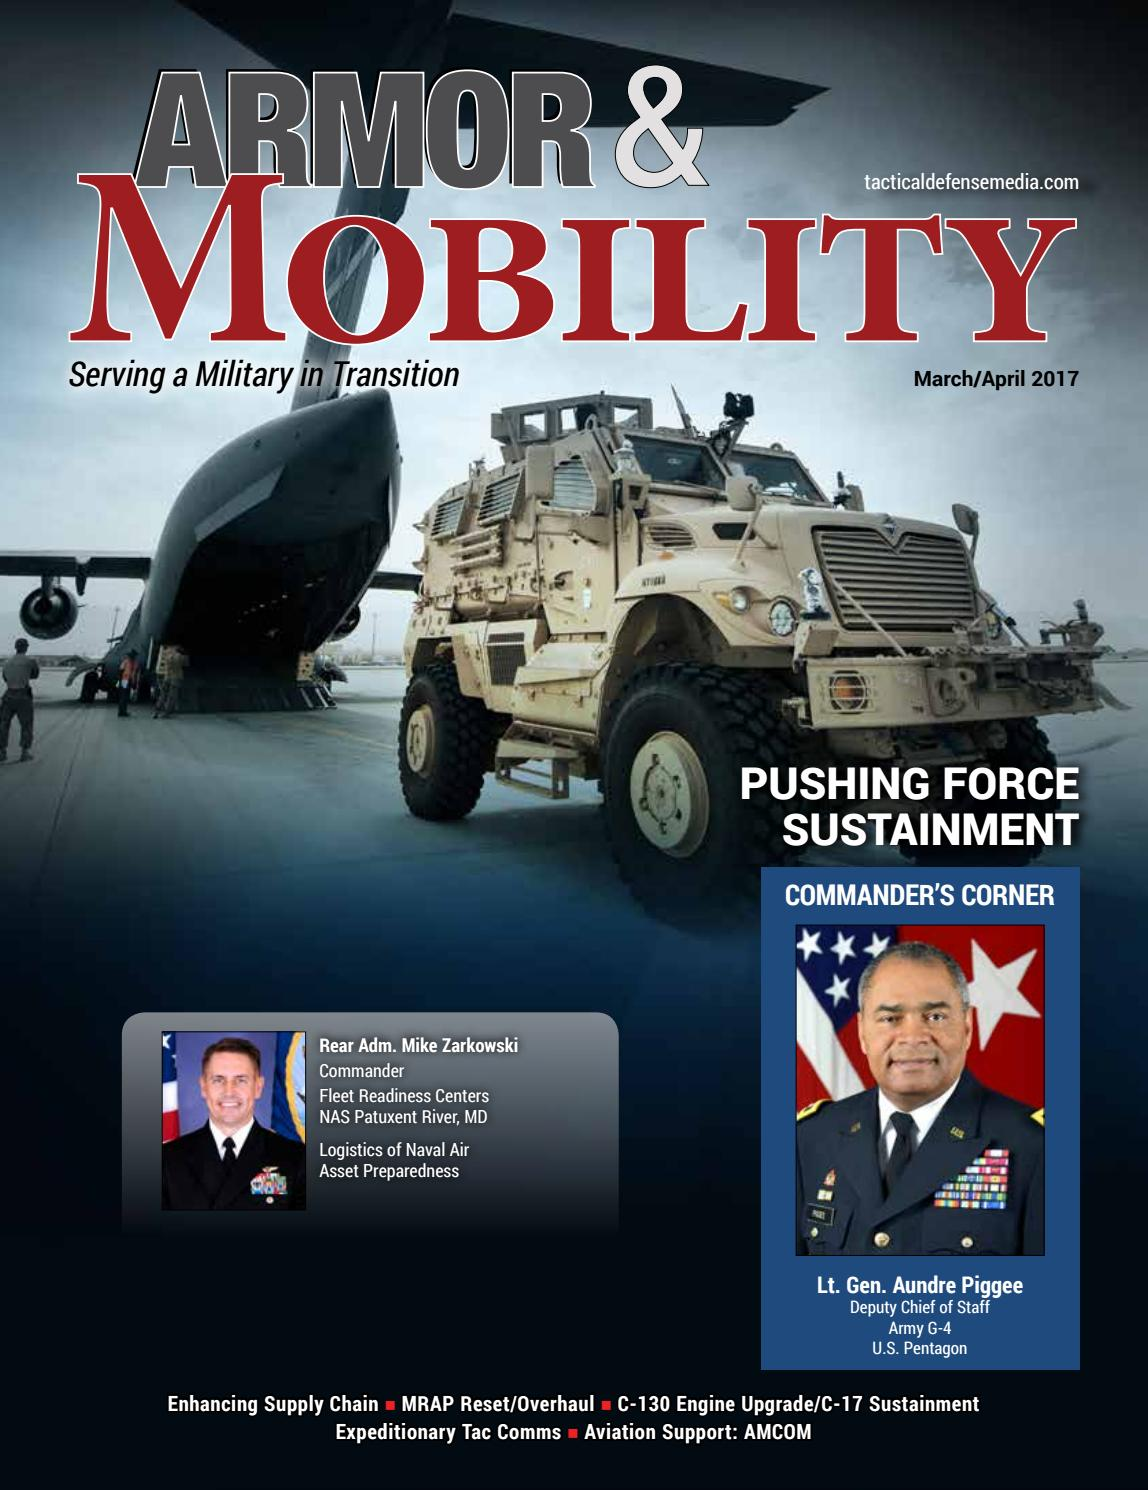 Armor & Mobility March/April 2017 by Tactical Defense Media